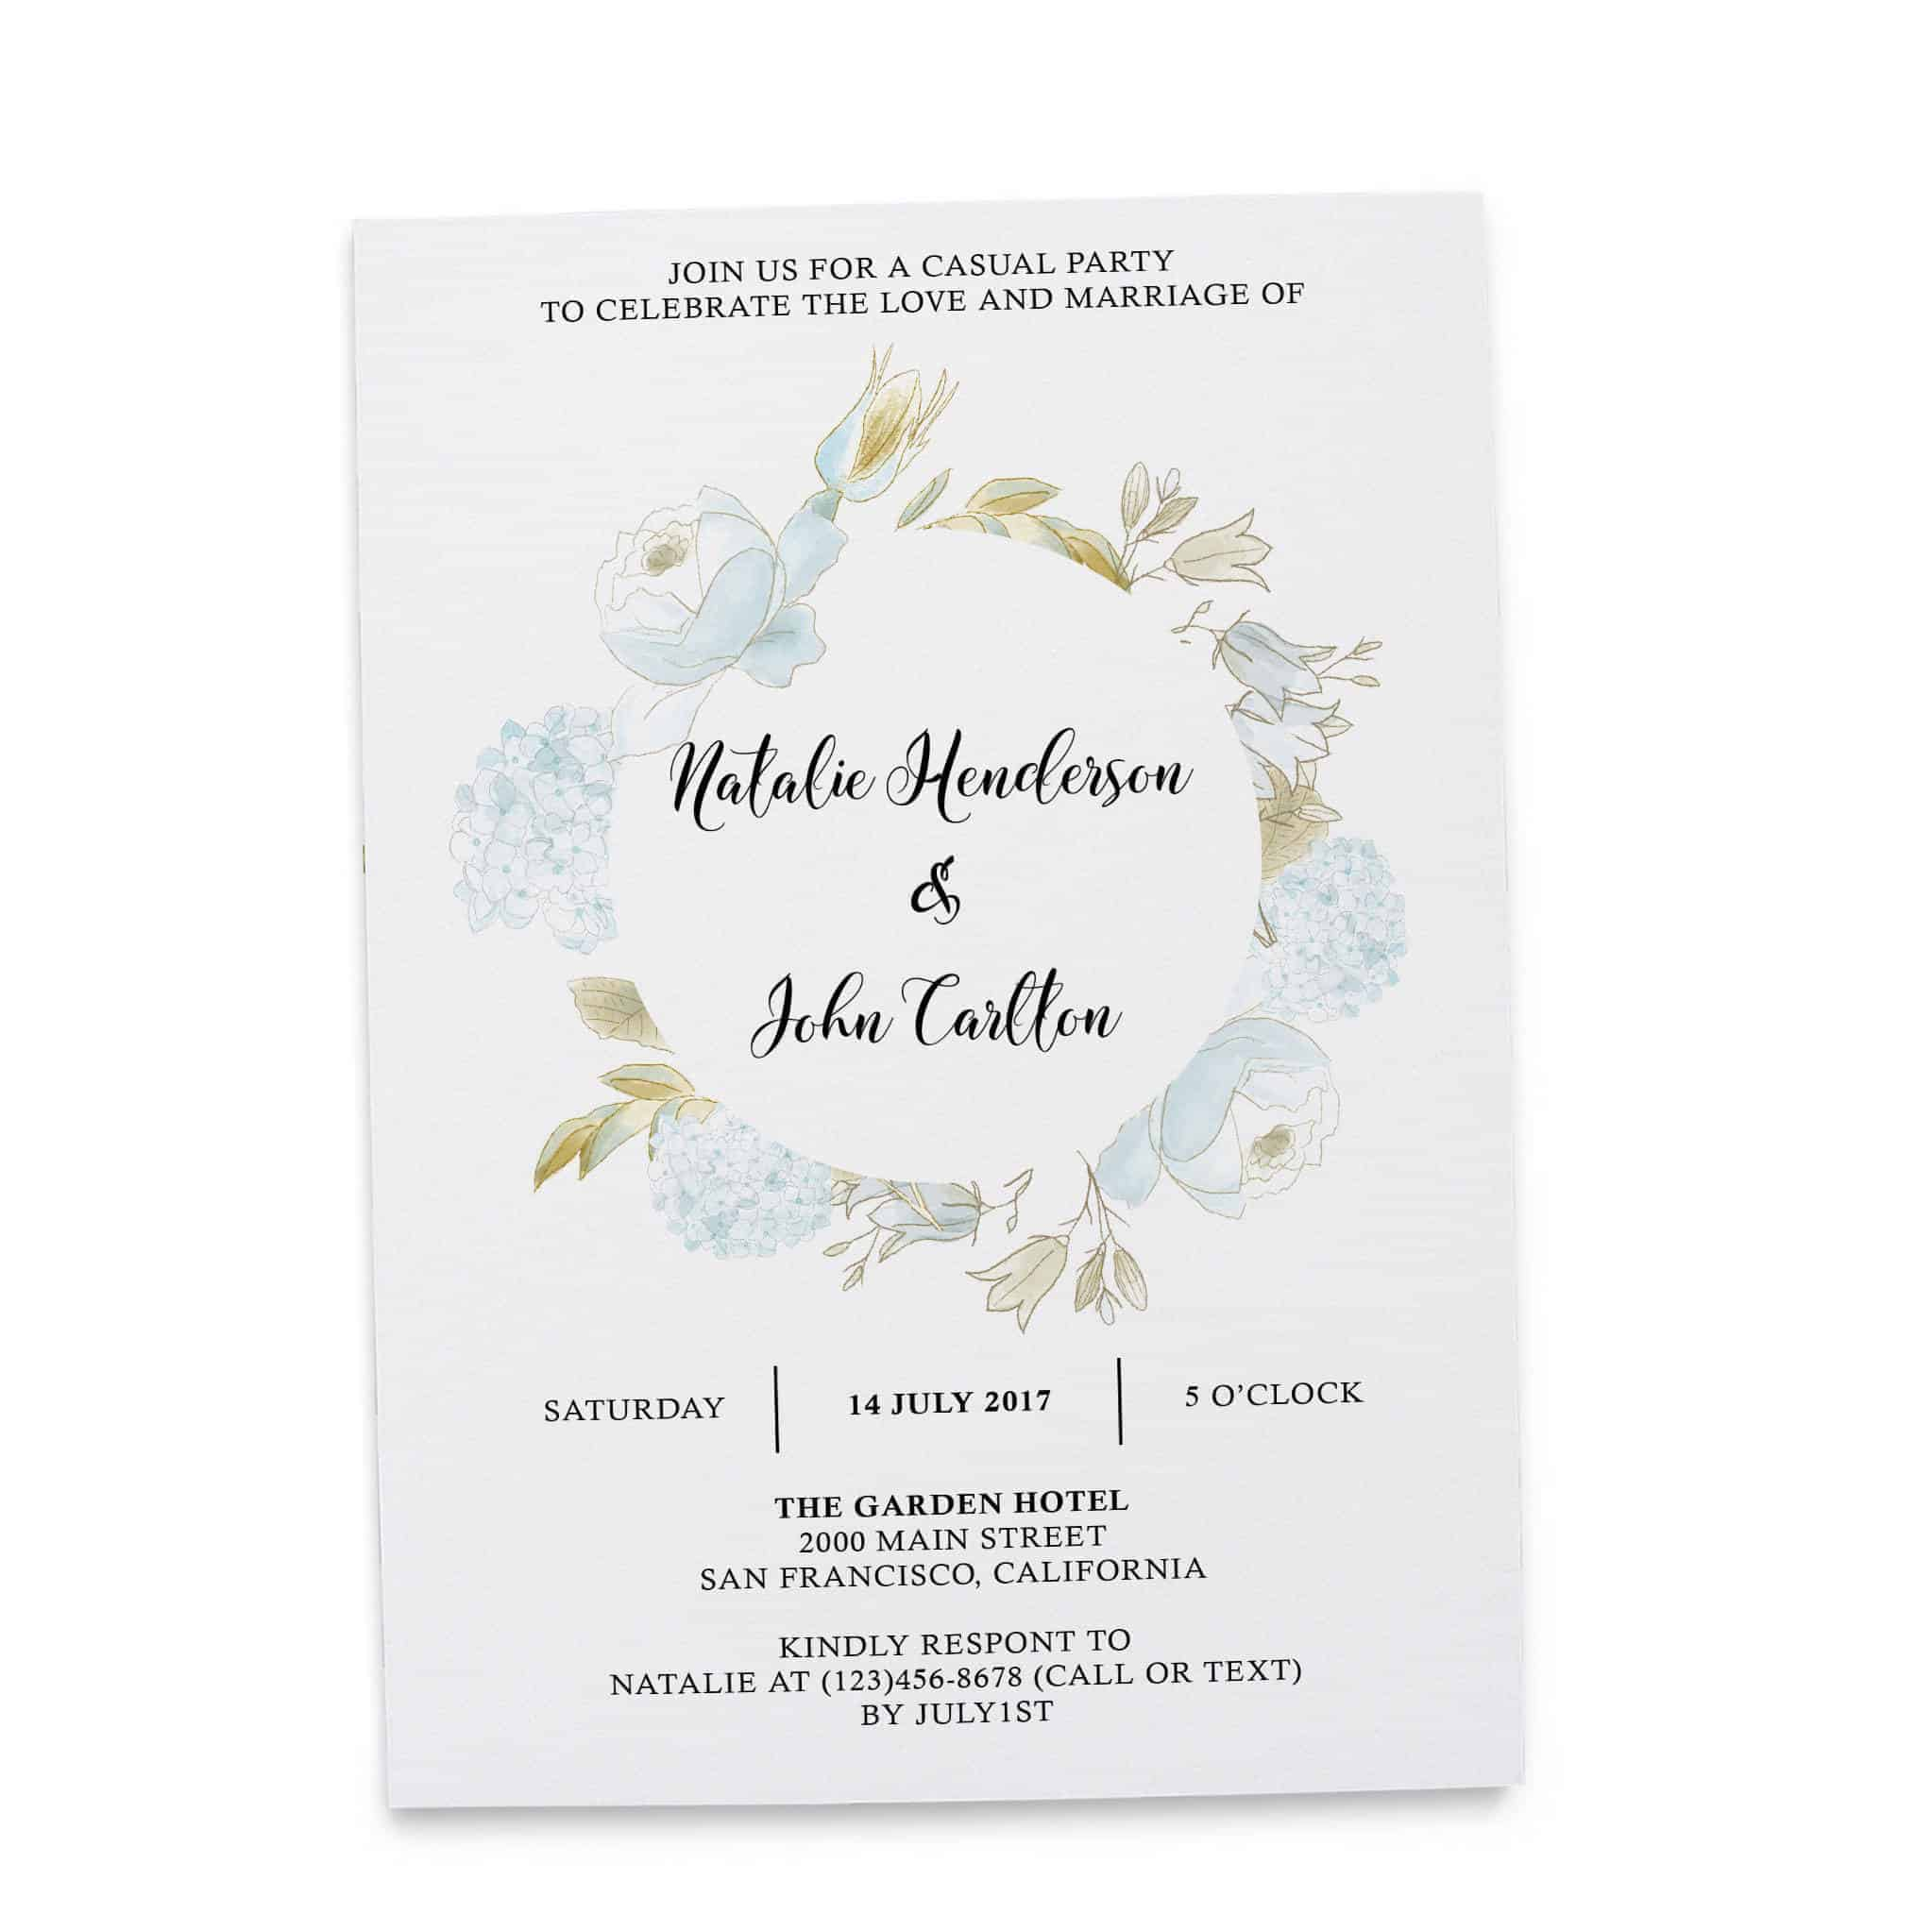 Elopement Reception Party Invitations, Casual Wedding Reception Cards, Printed Printable Wedding Party Card, Gentle Floral Design